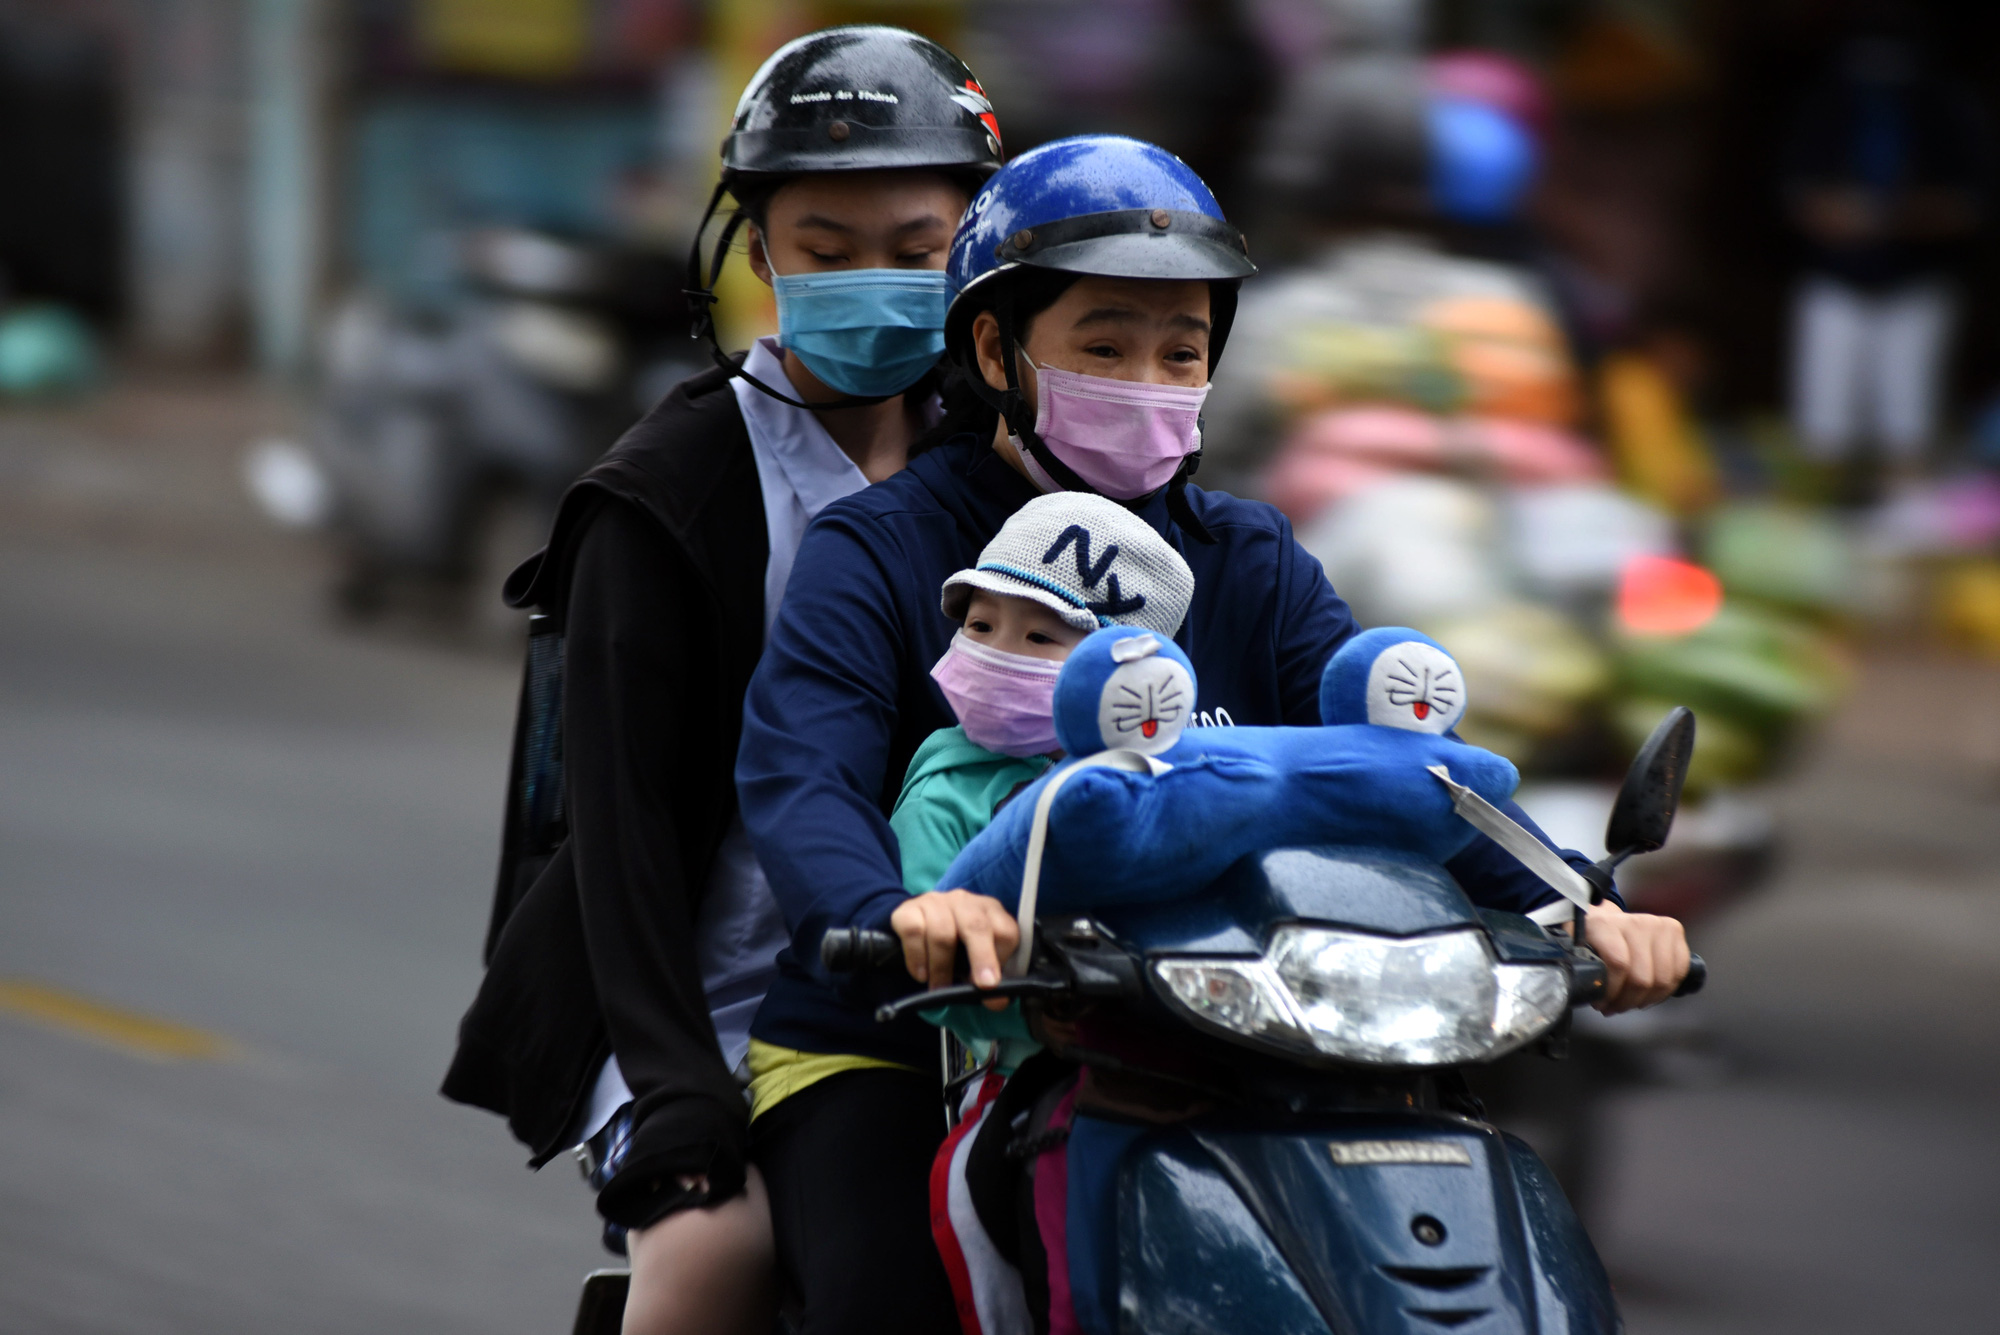 Temperature in Ho Chi Minh City plummets due to tropical depression, cold spell